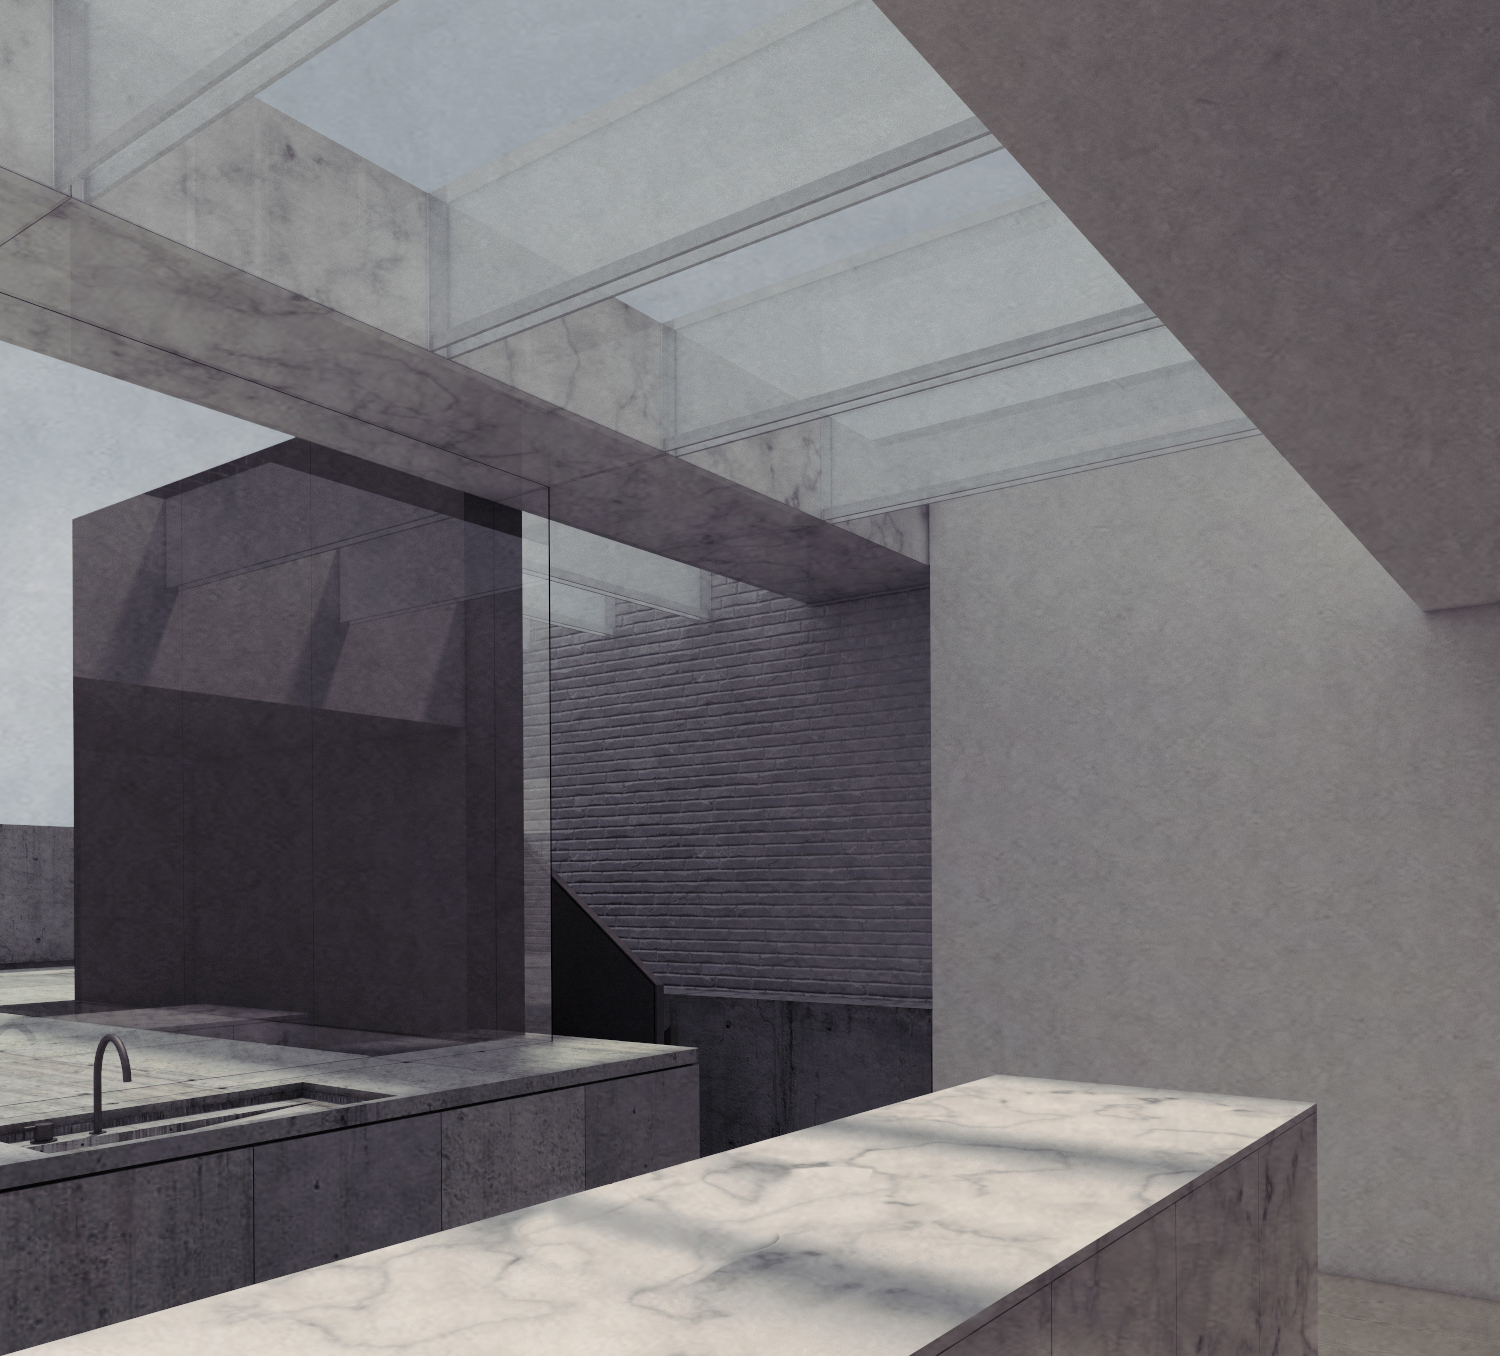 living stratum-con_form_architects_01.jpg